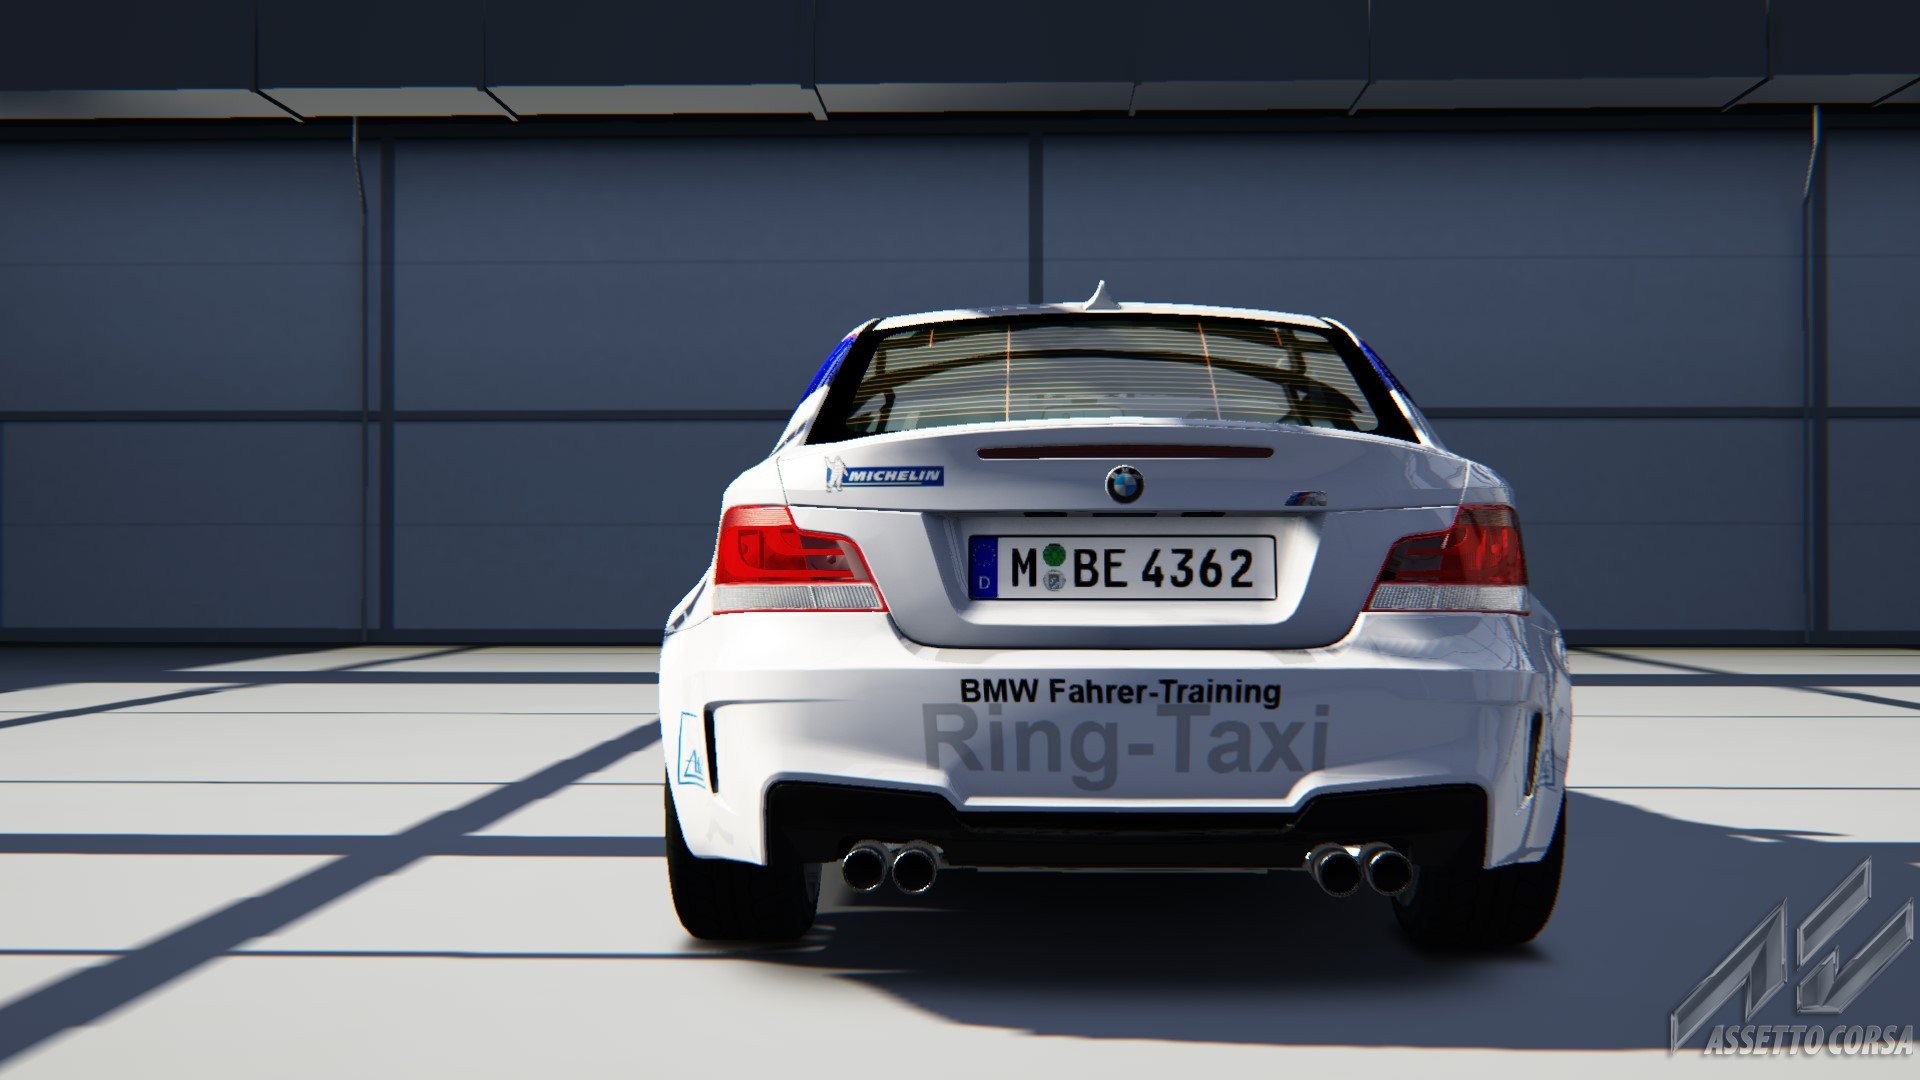 Showroom_bmw_1m_18-8-2014-13-55-5.jpg